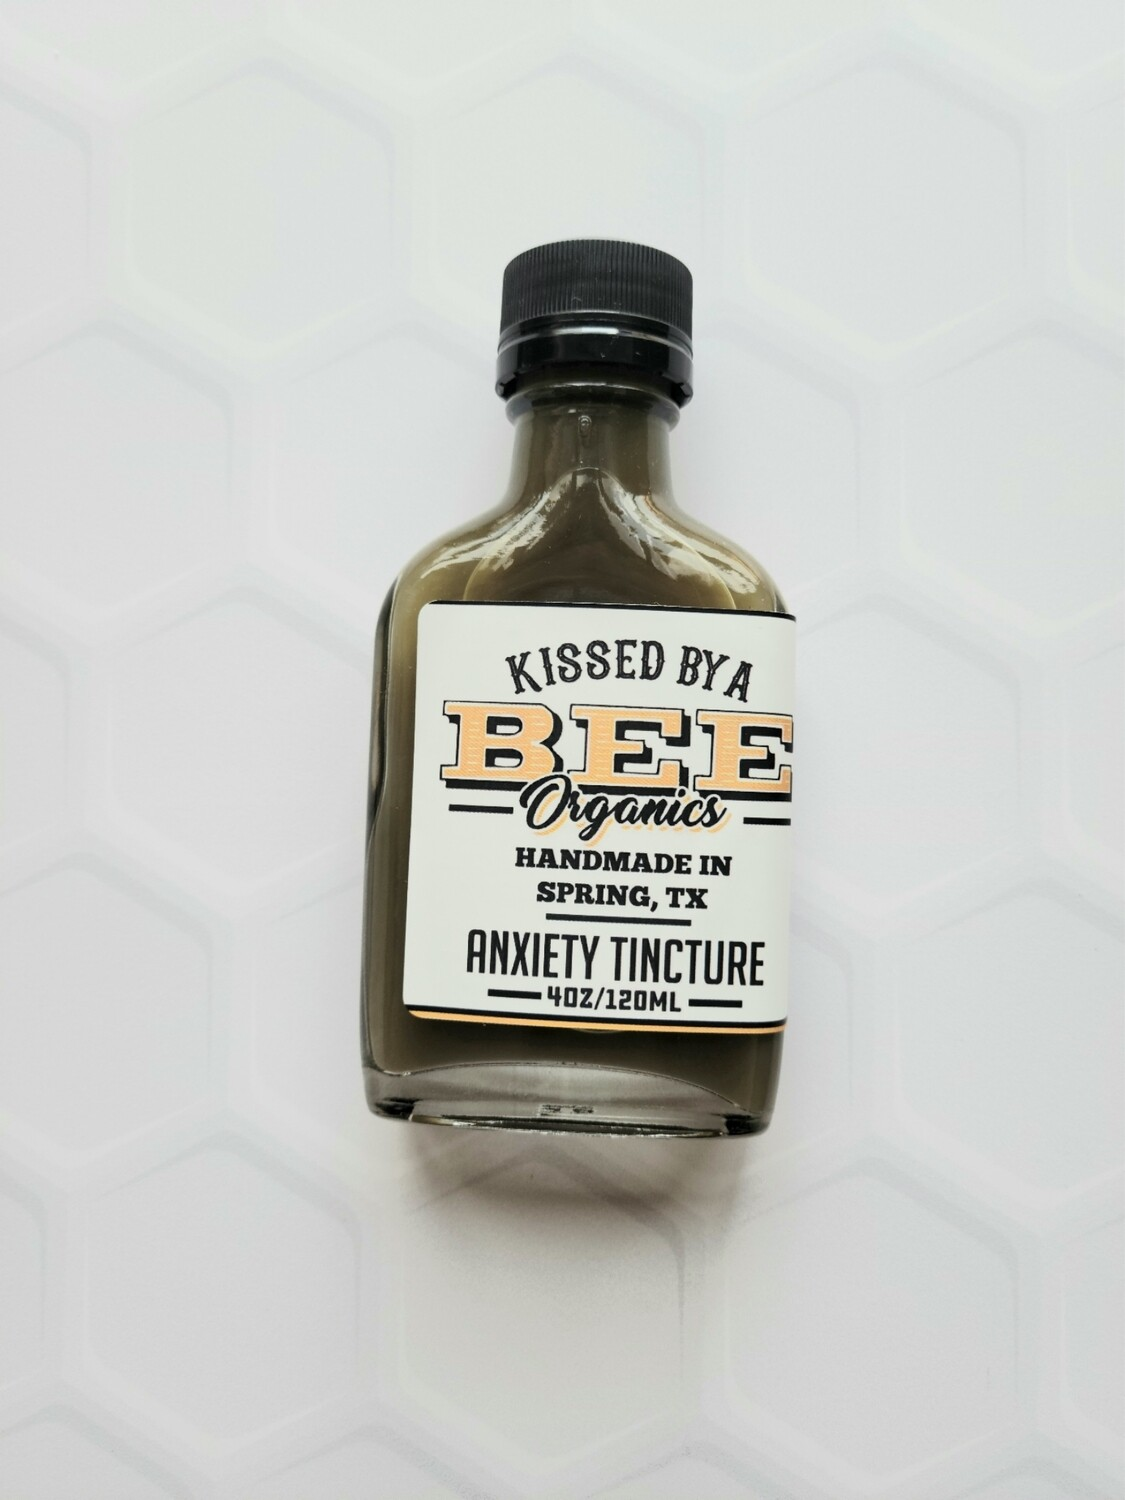 ANXIETY TINCTURE (4 oz)